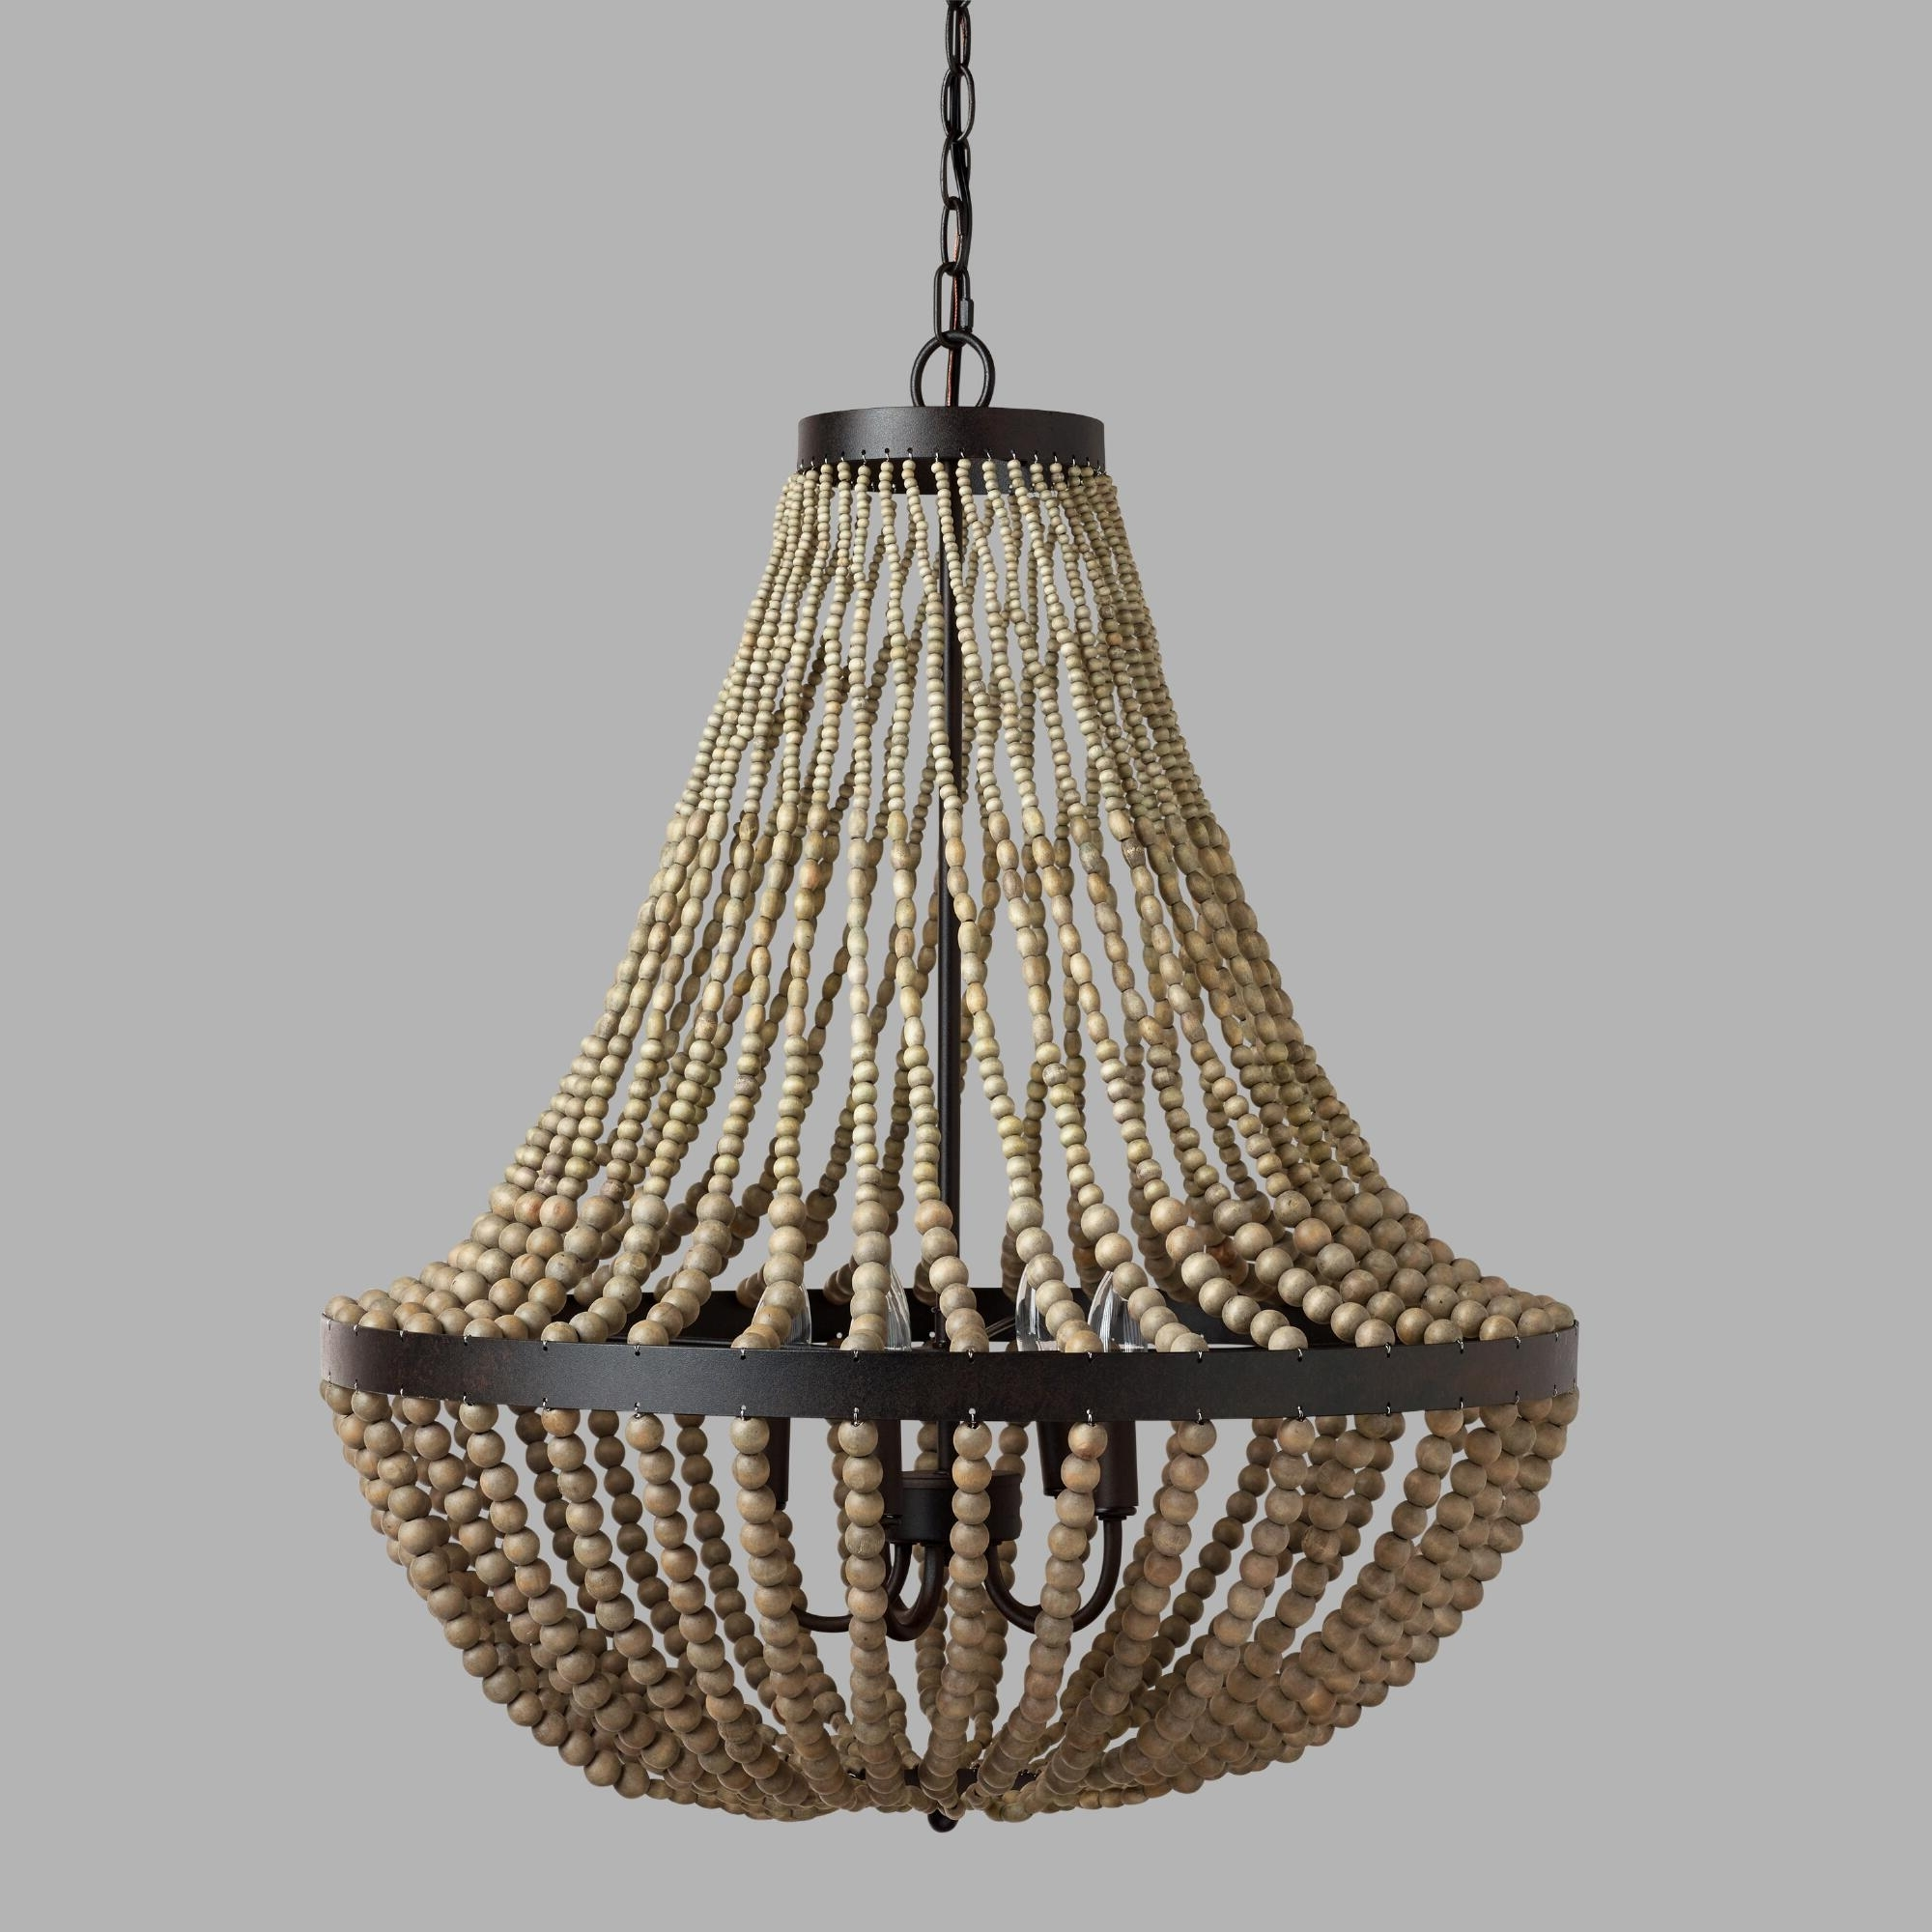 Giant Chandeliers With Popular Chandelier (View 6 of 15)